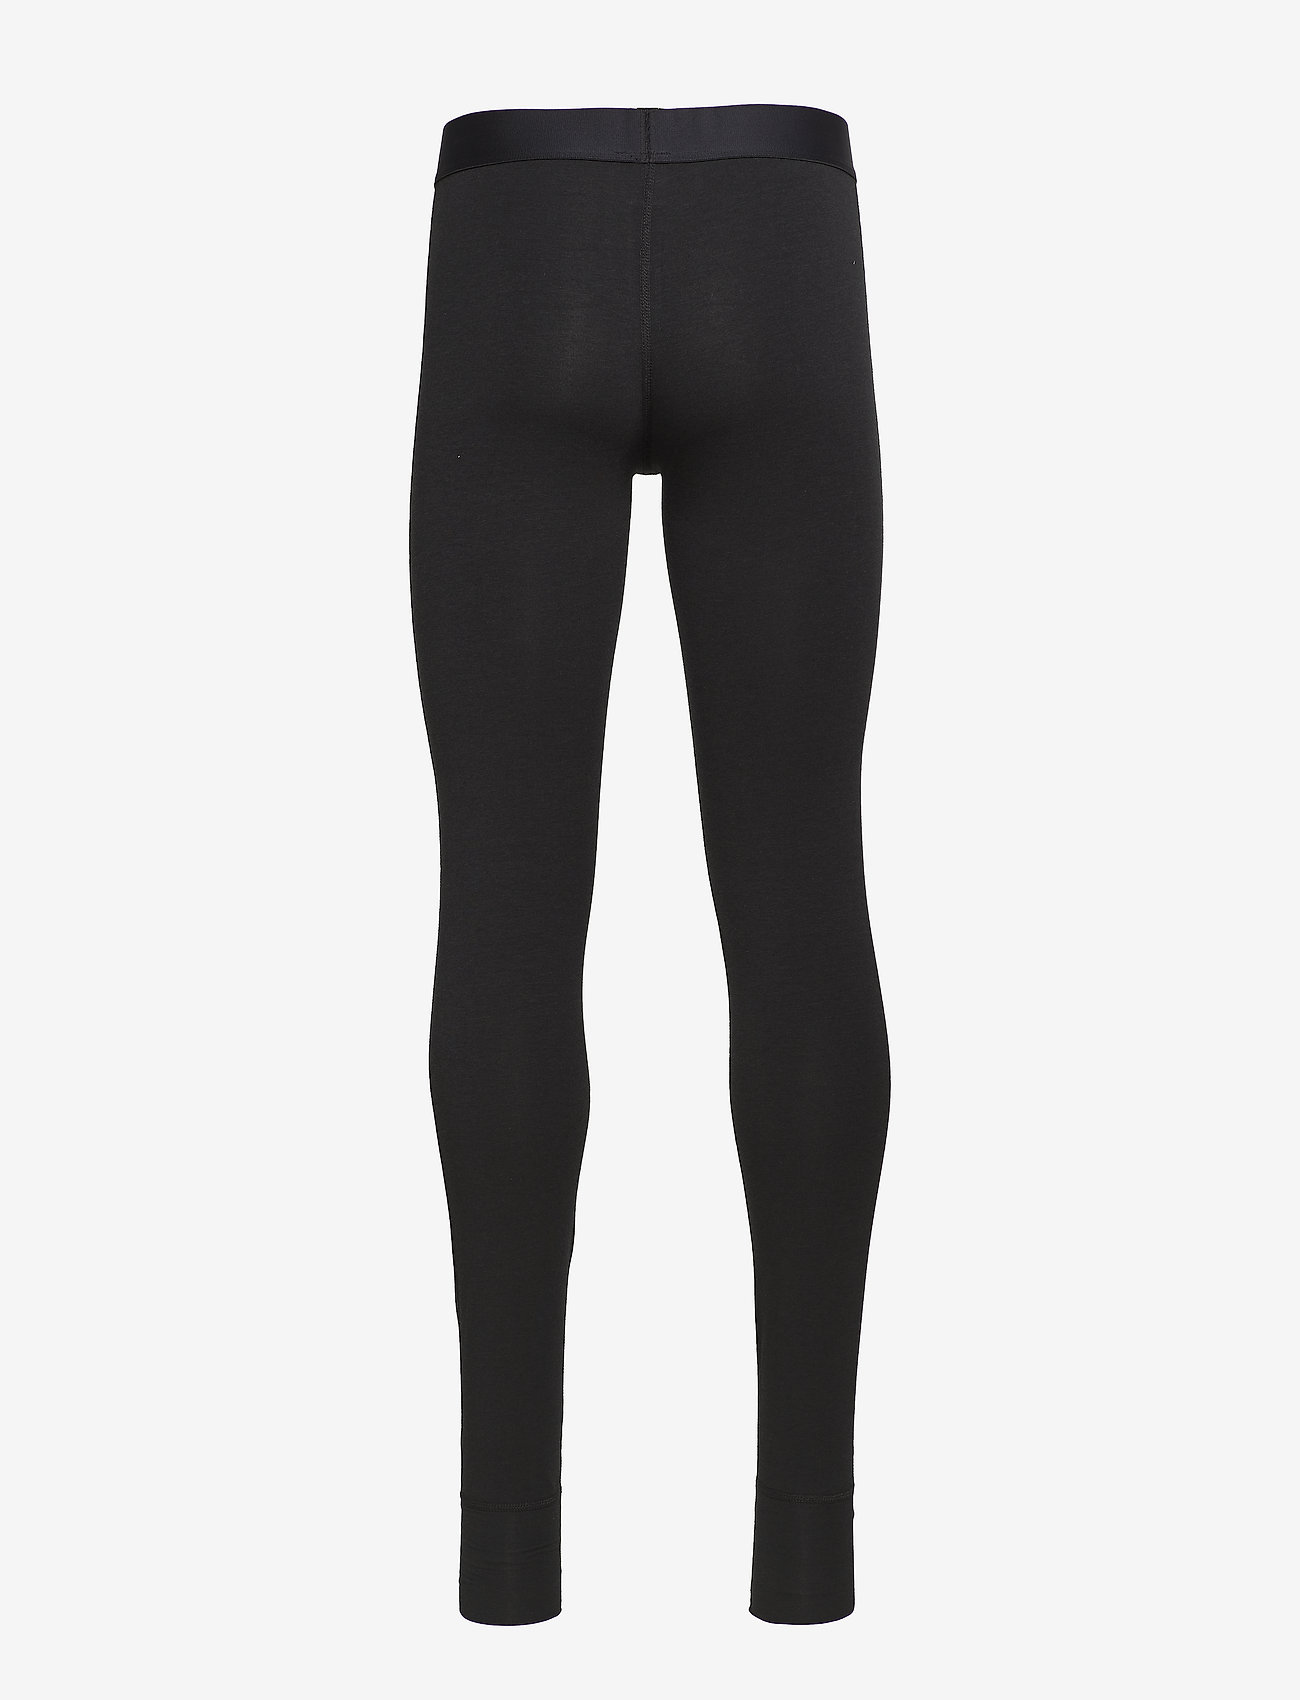 Resteröds - BAMBU Long John - base layer underdeler - black - 1